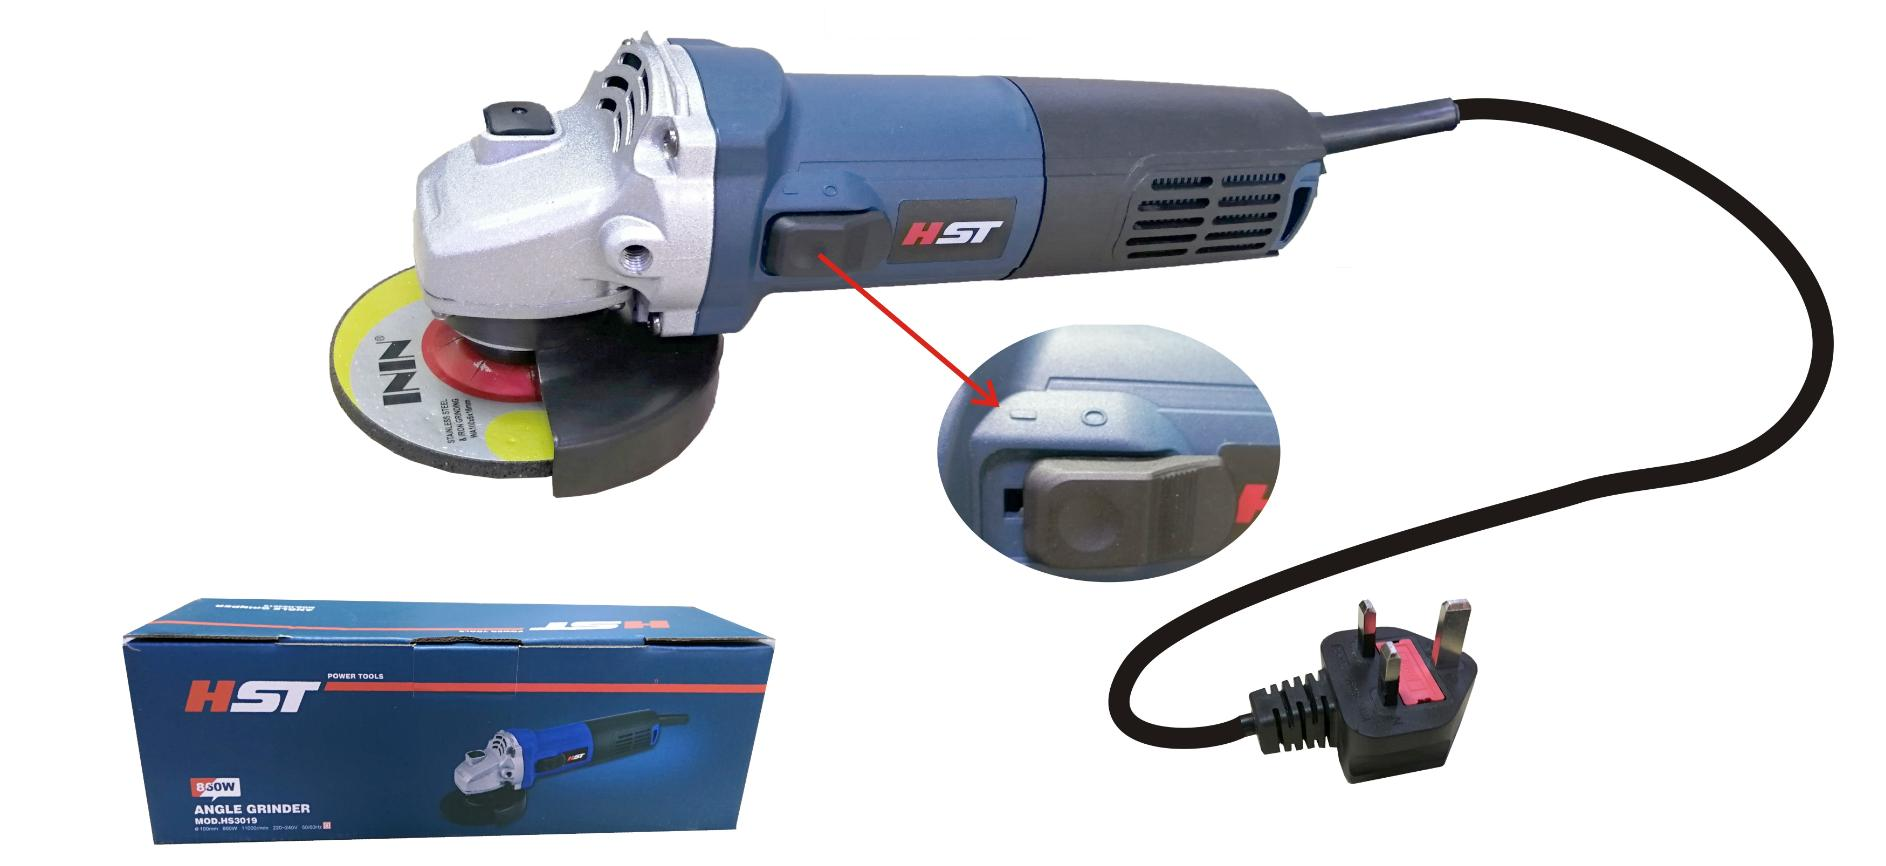 860w Super Angle Grinder ⌀100mm By De Feng Pte Ltd